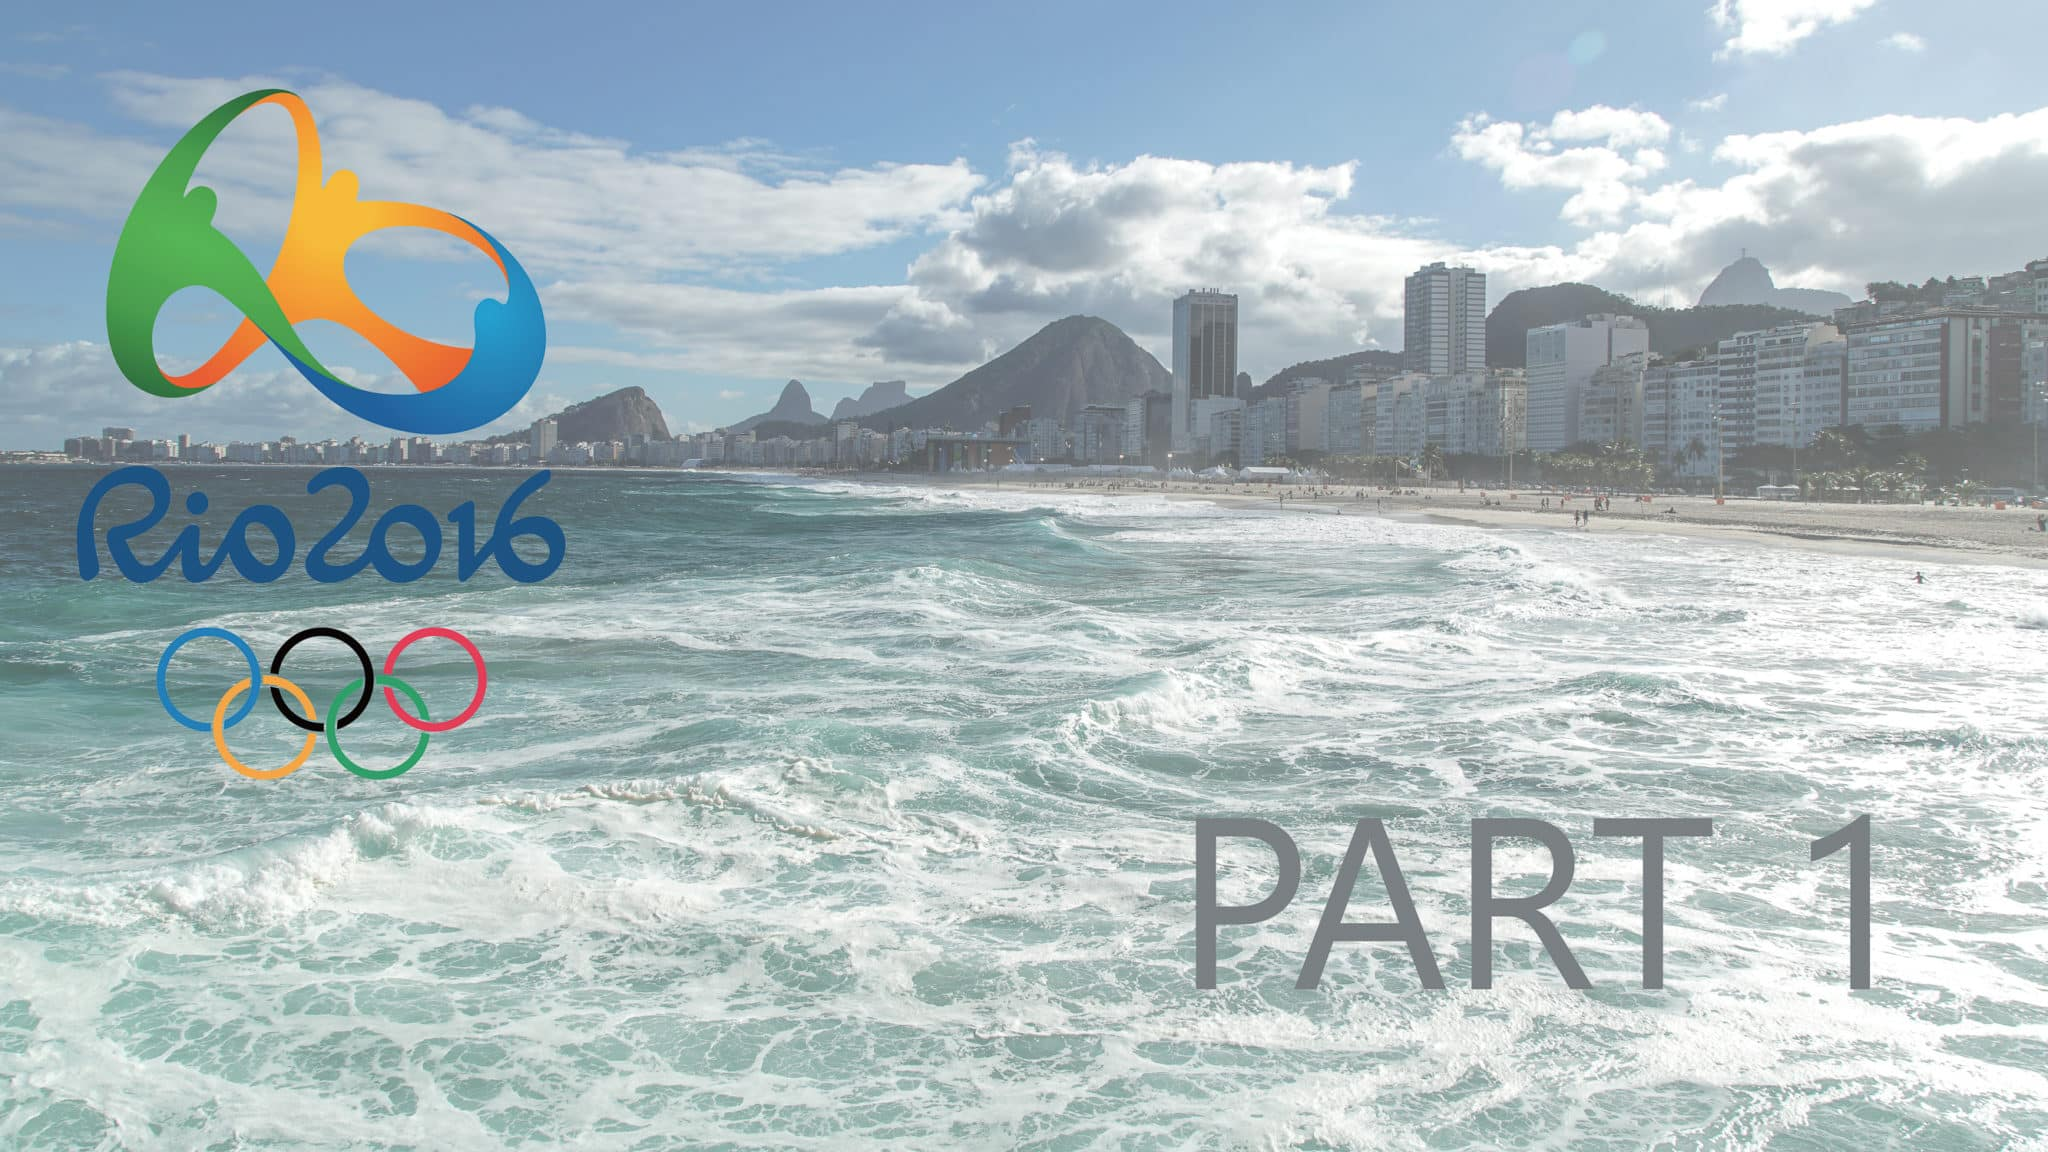 Rio 2016: A Trip of a Lifetime Part 1